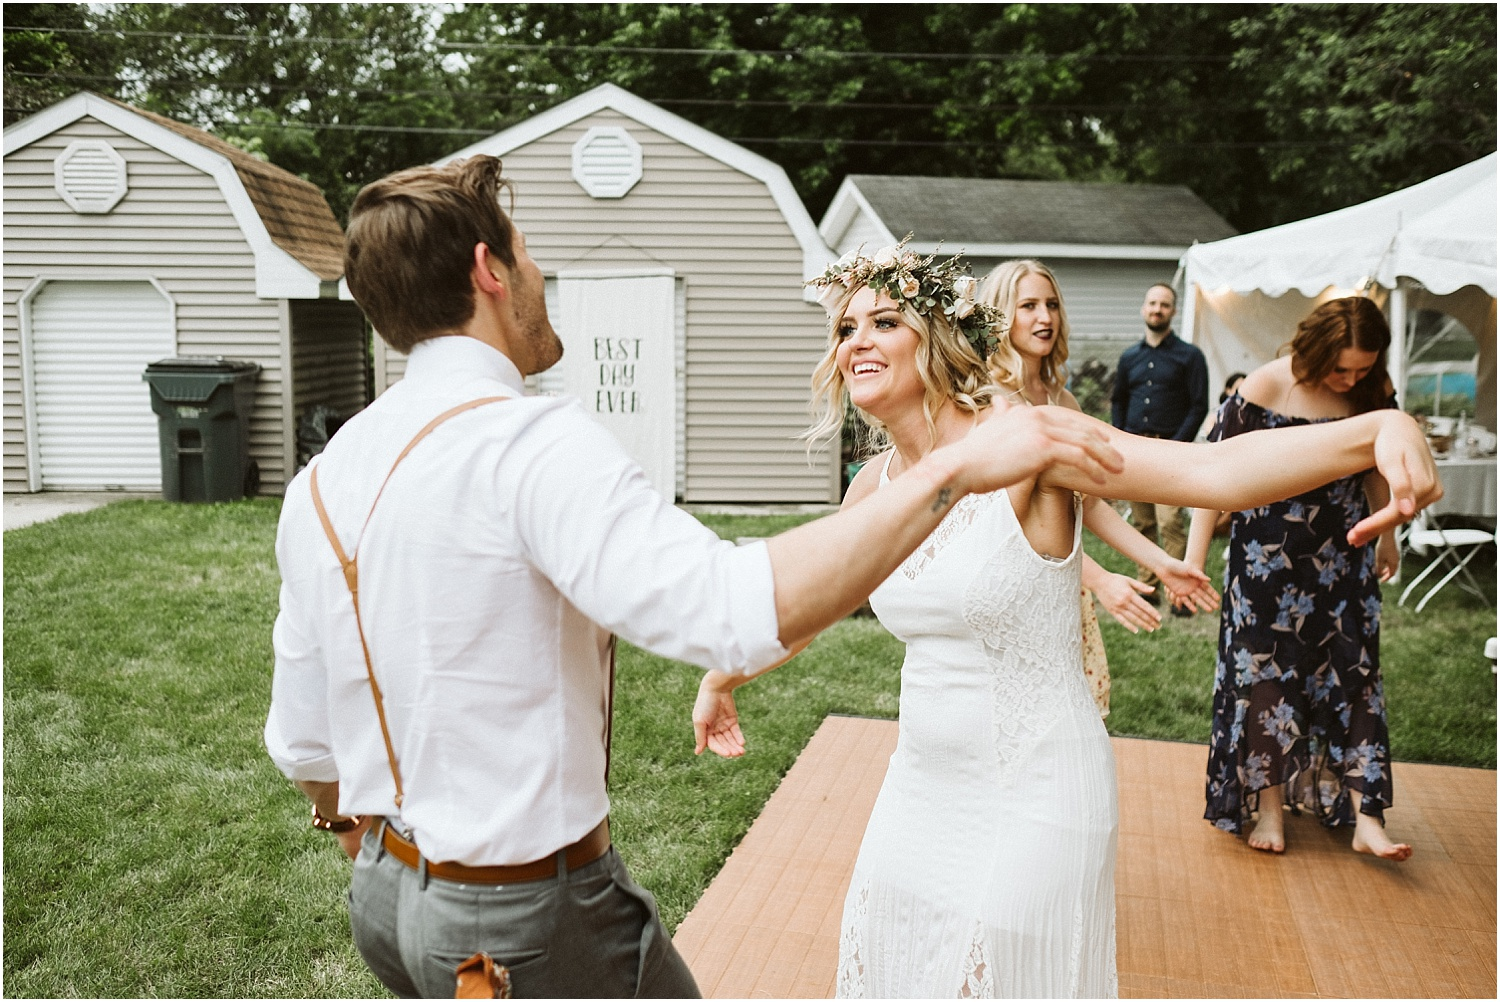 j-b-joyful-happy-smile-dancing-backyard-diy-boho-chic-wedding_0065.jpg